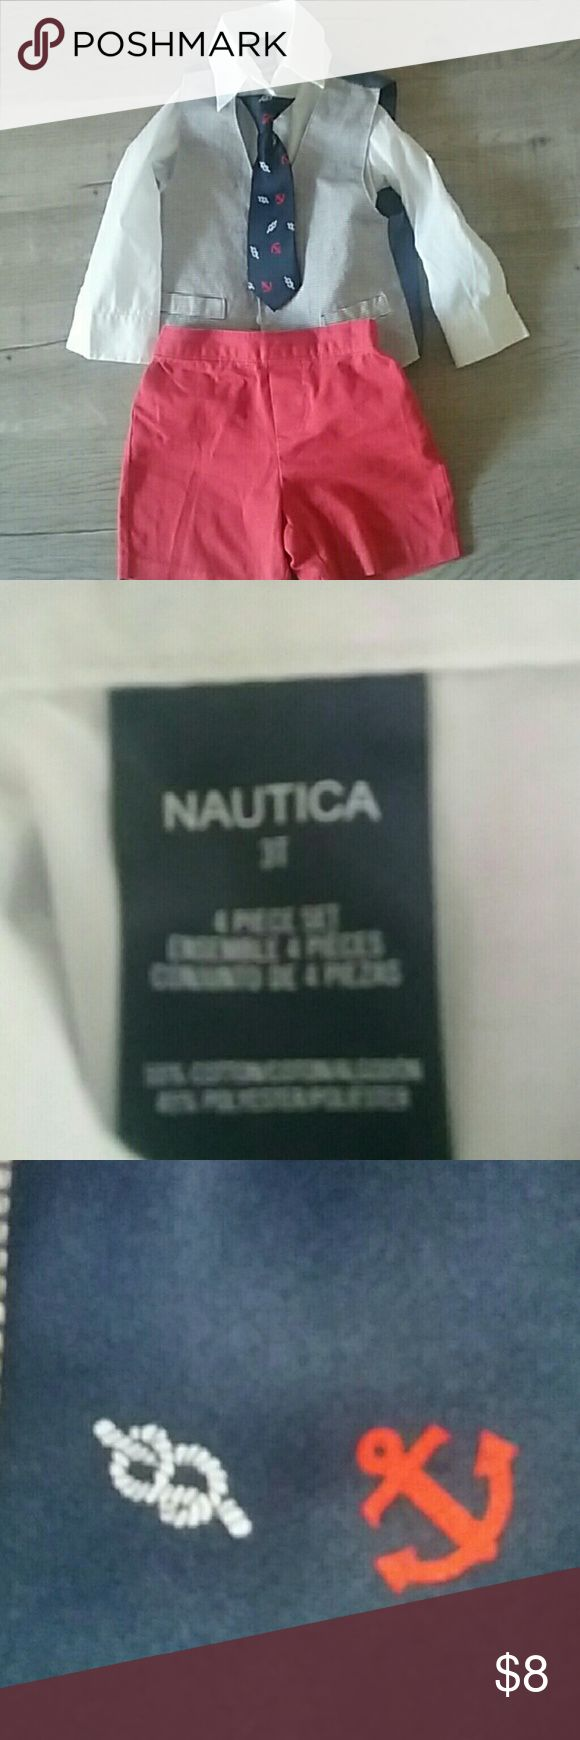 Nautica 4 piece suit Red shirts with white long sleeve shirt and blue and white vest with nautical tie Nautica Matching Sets